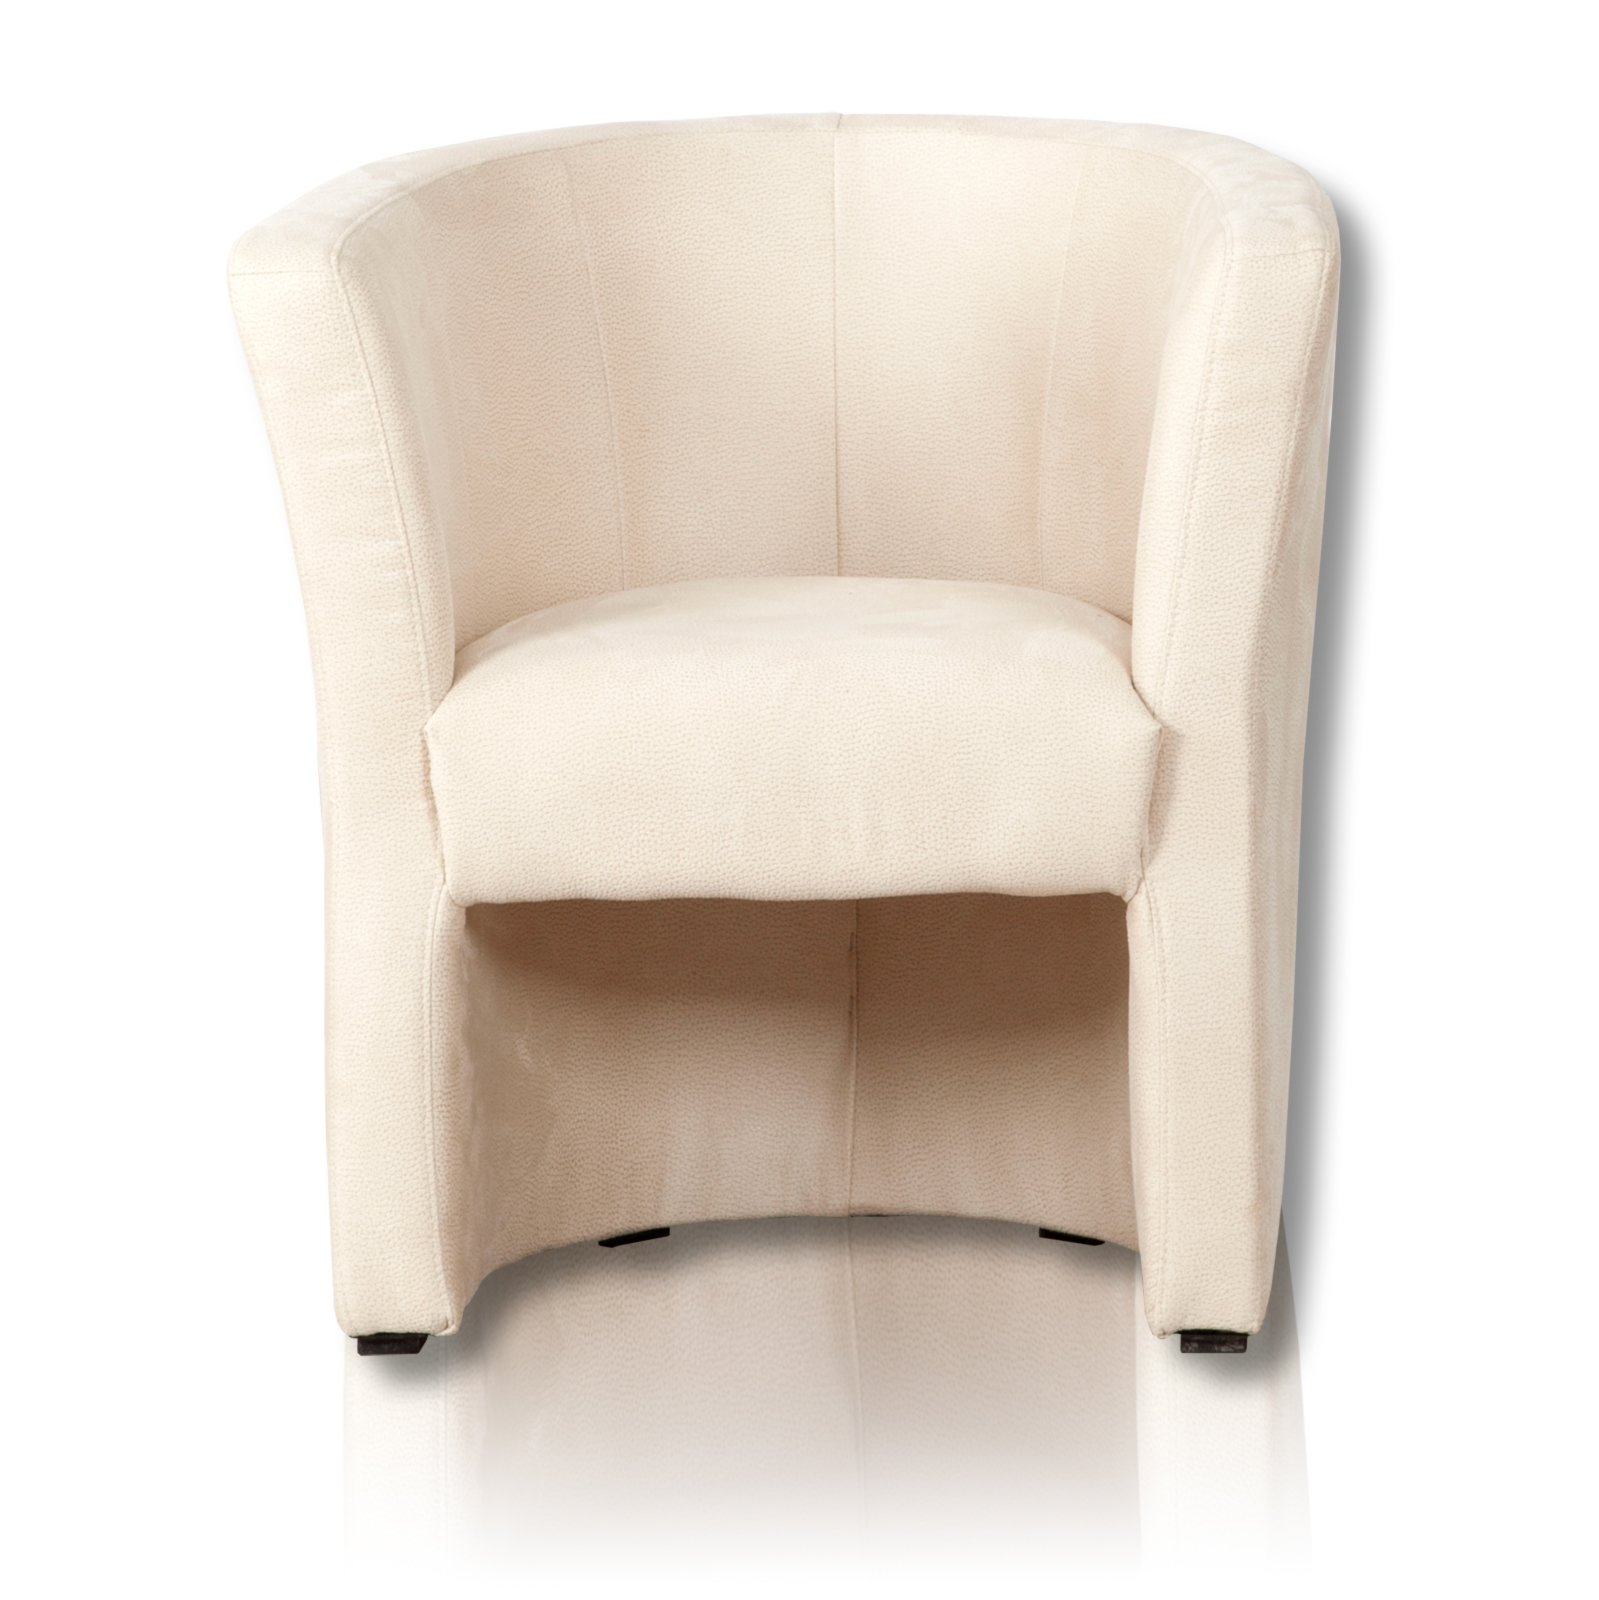 Cocktailsessel Beige Cocktailsessel Beige Cocktailsessel Sessel And Hocker